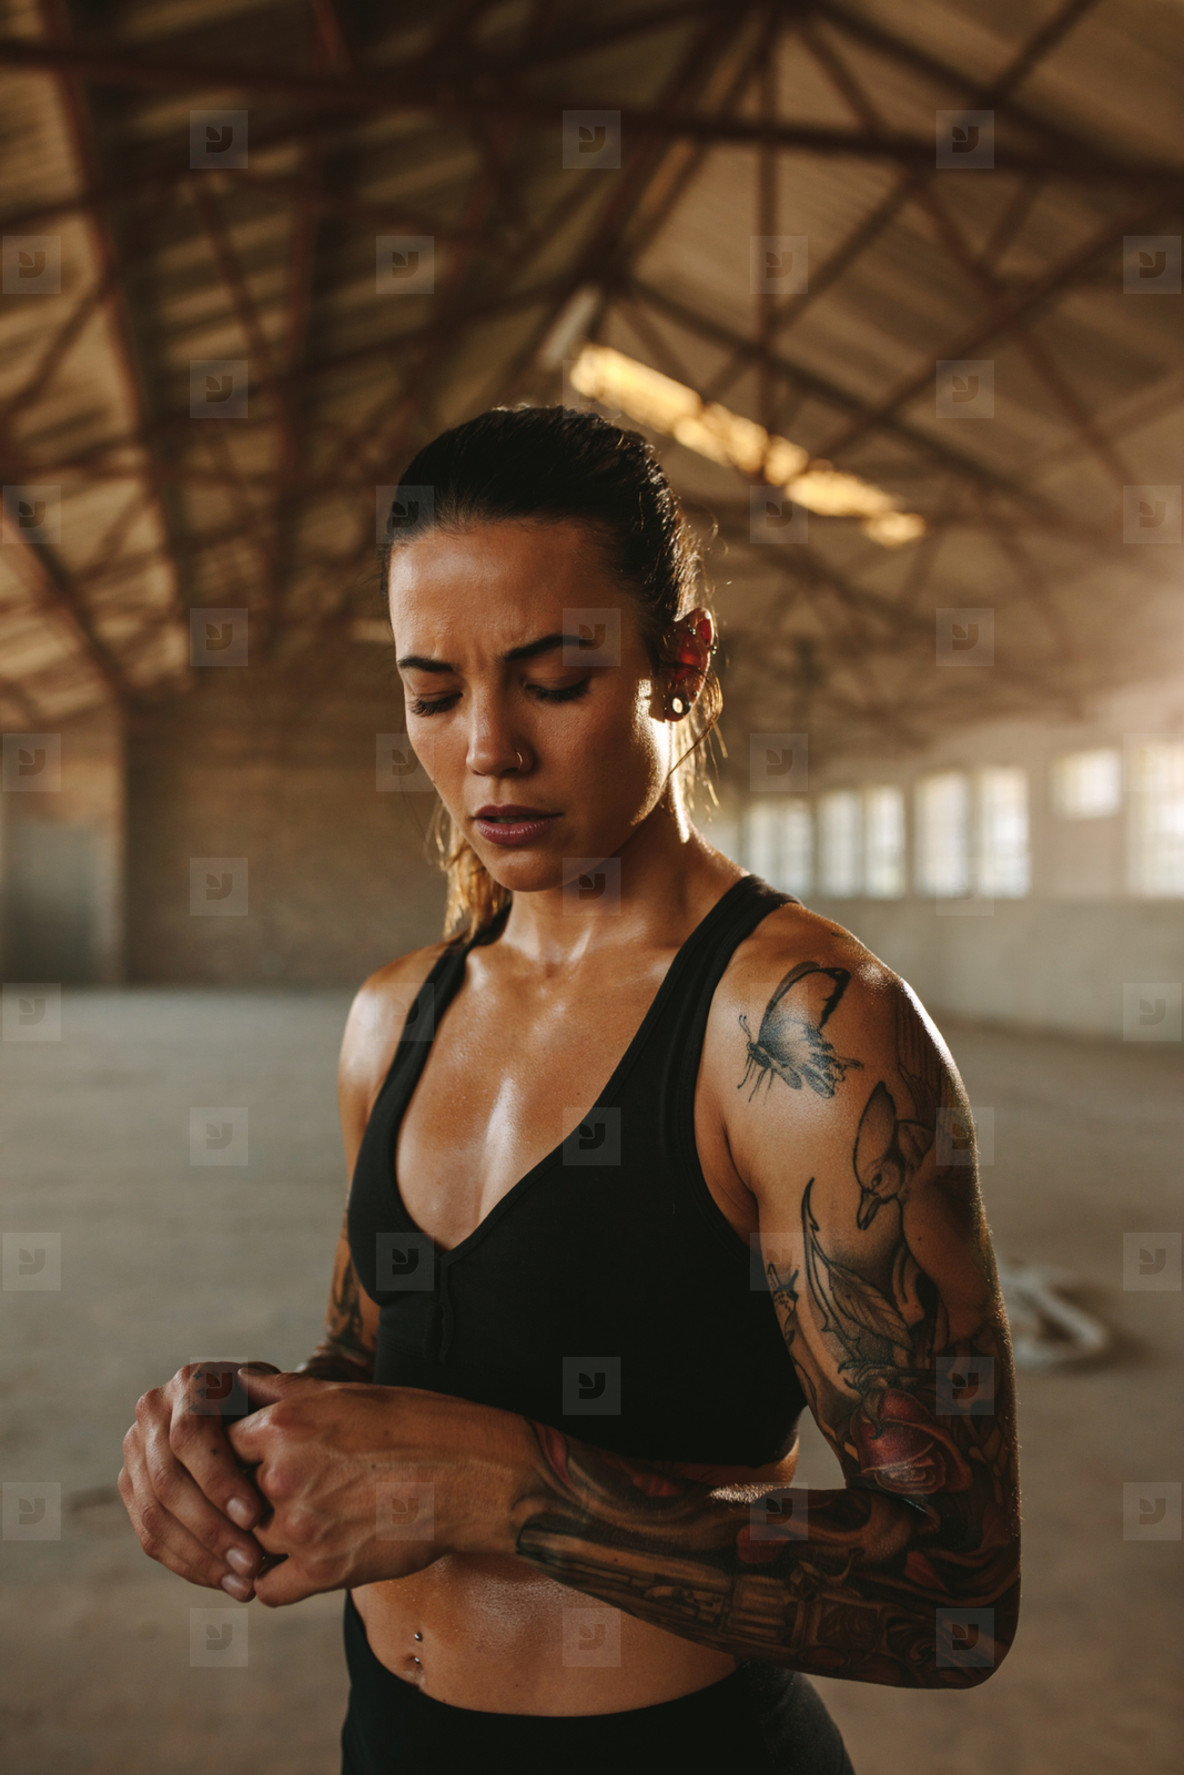 Muscular woman inside abandoned warehouse